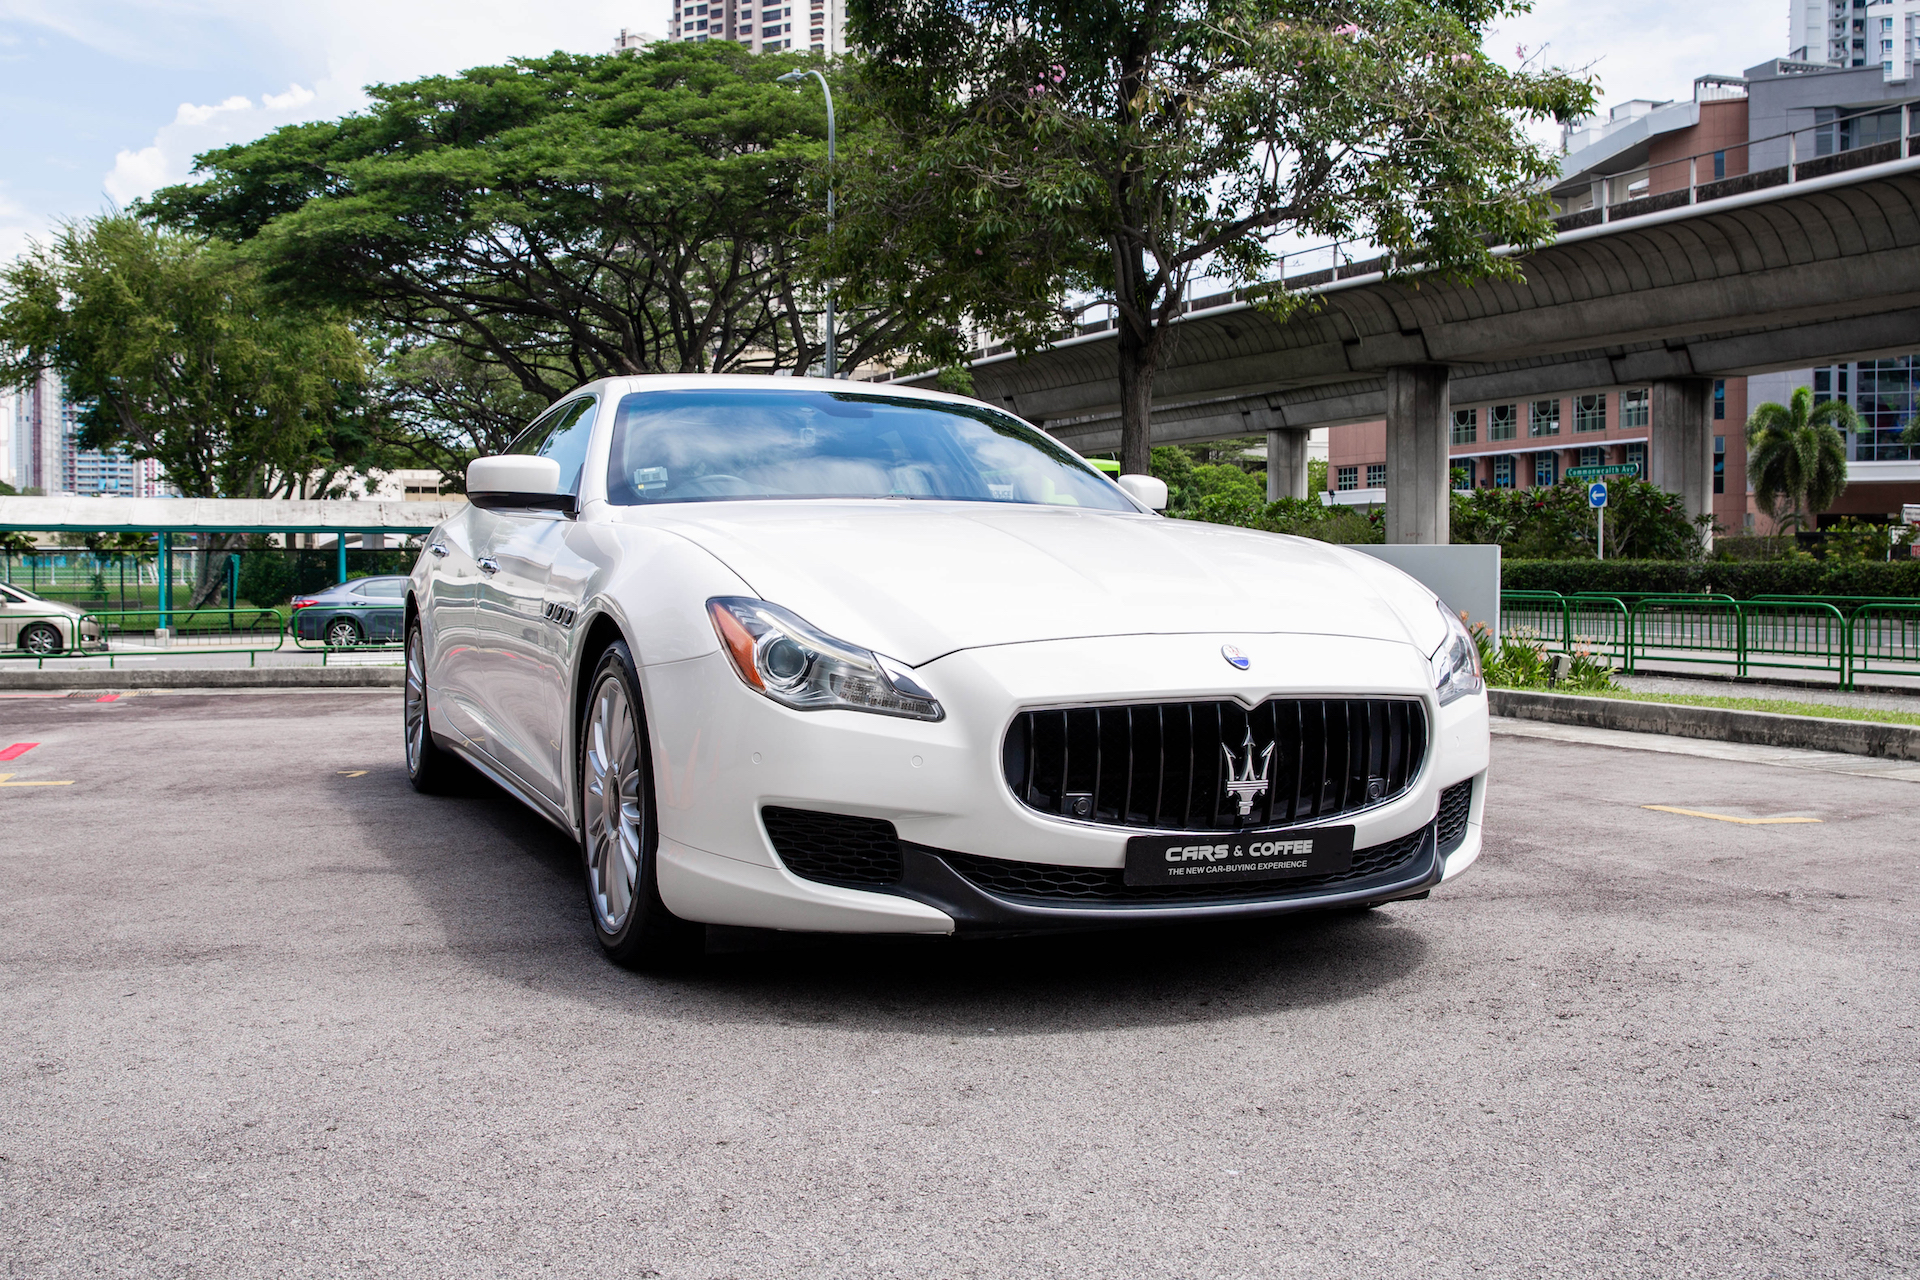 Certified Pre-Owned Maserati Quattroporte S 3.0A   Cars and Coffee Singapore